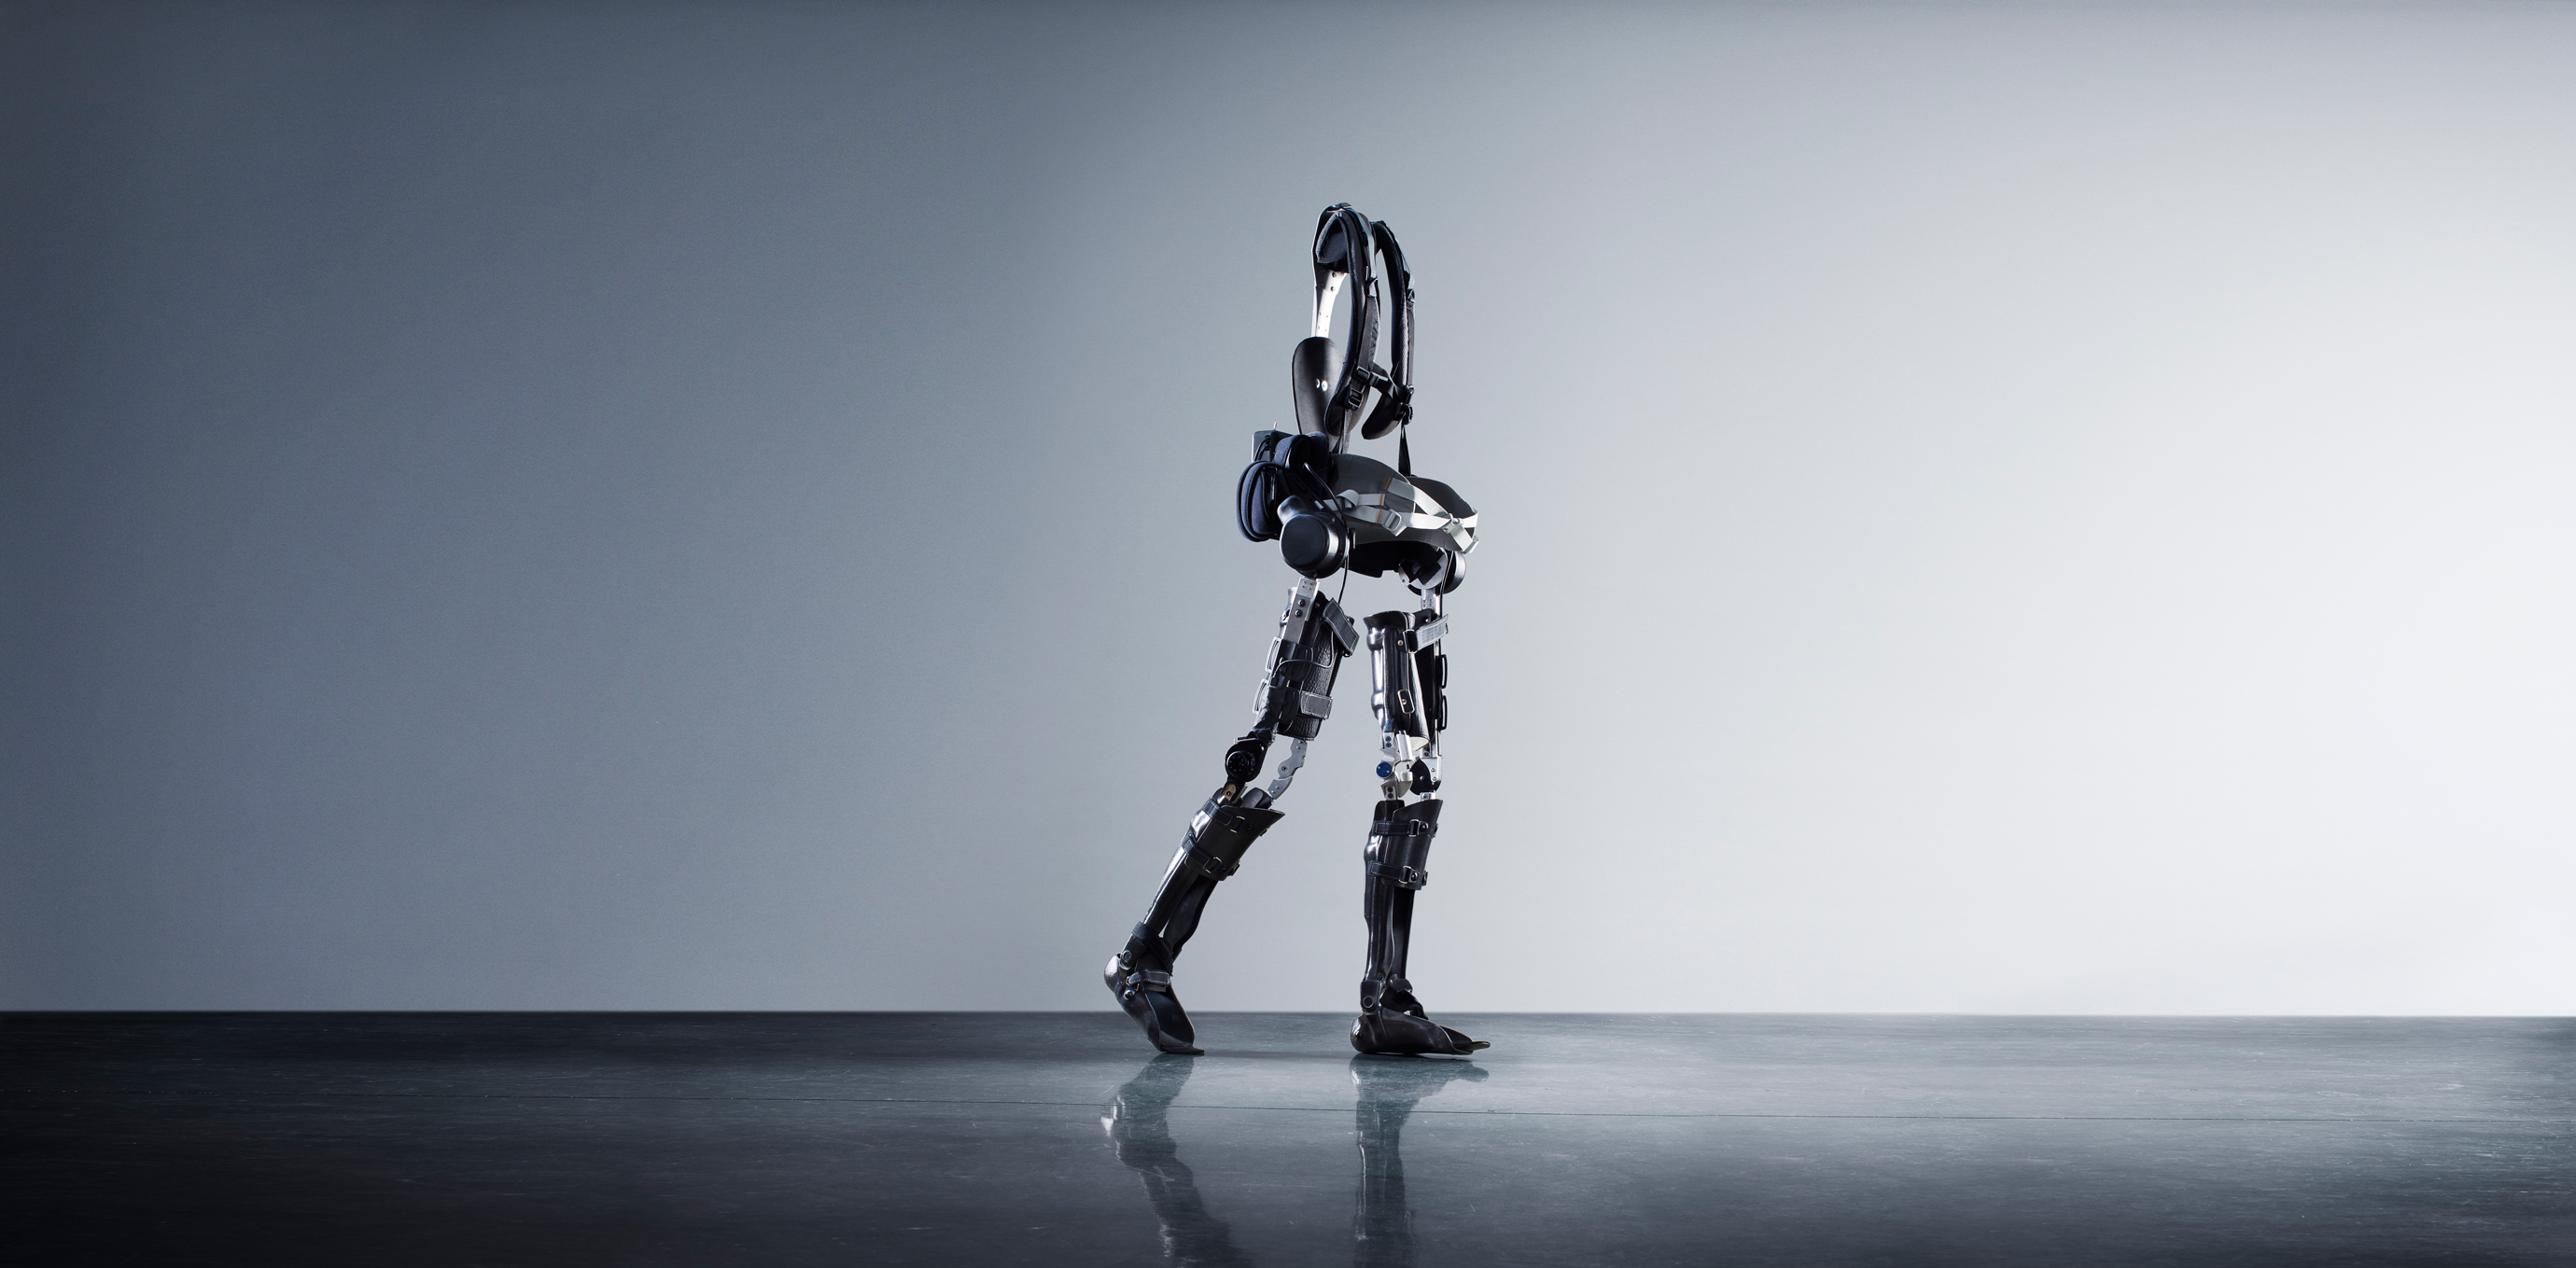 This $40,000 Robotic Exoskeleton Lets the Paralyzed Walk - MIT Technology Review